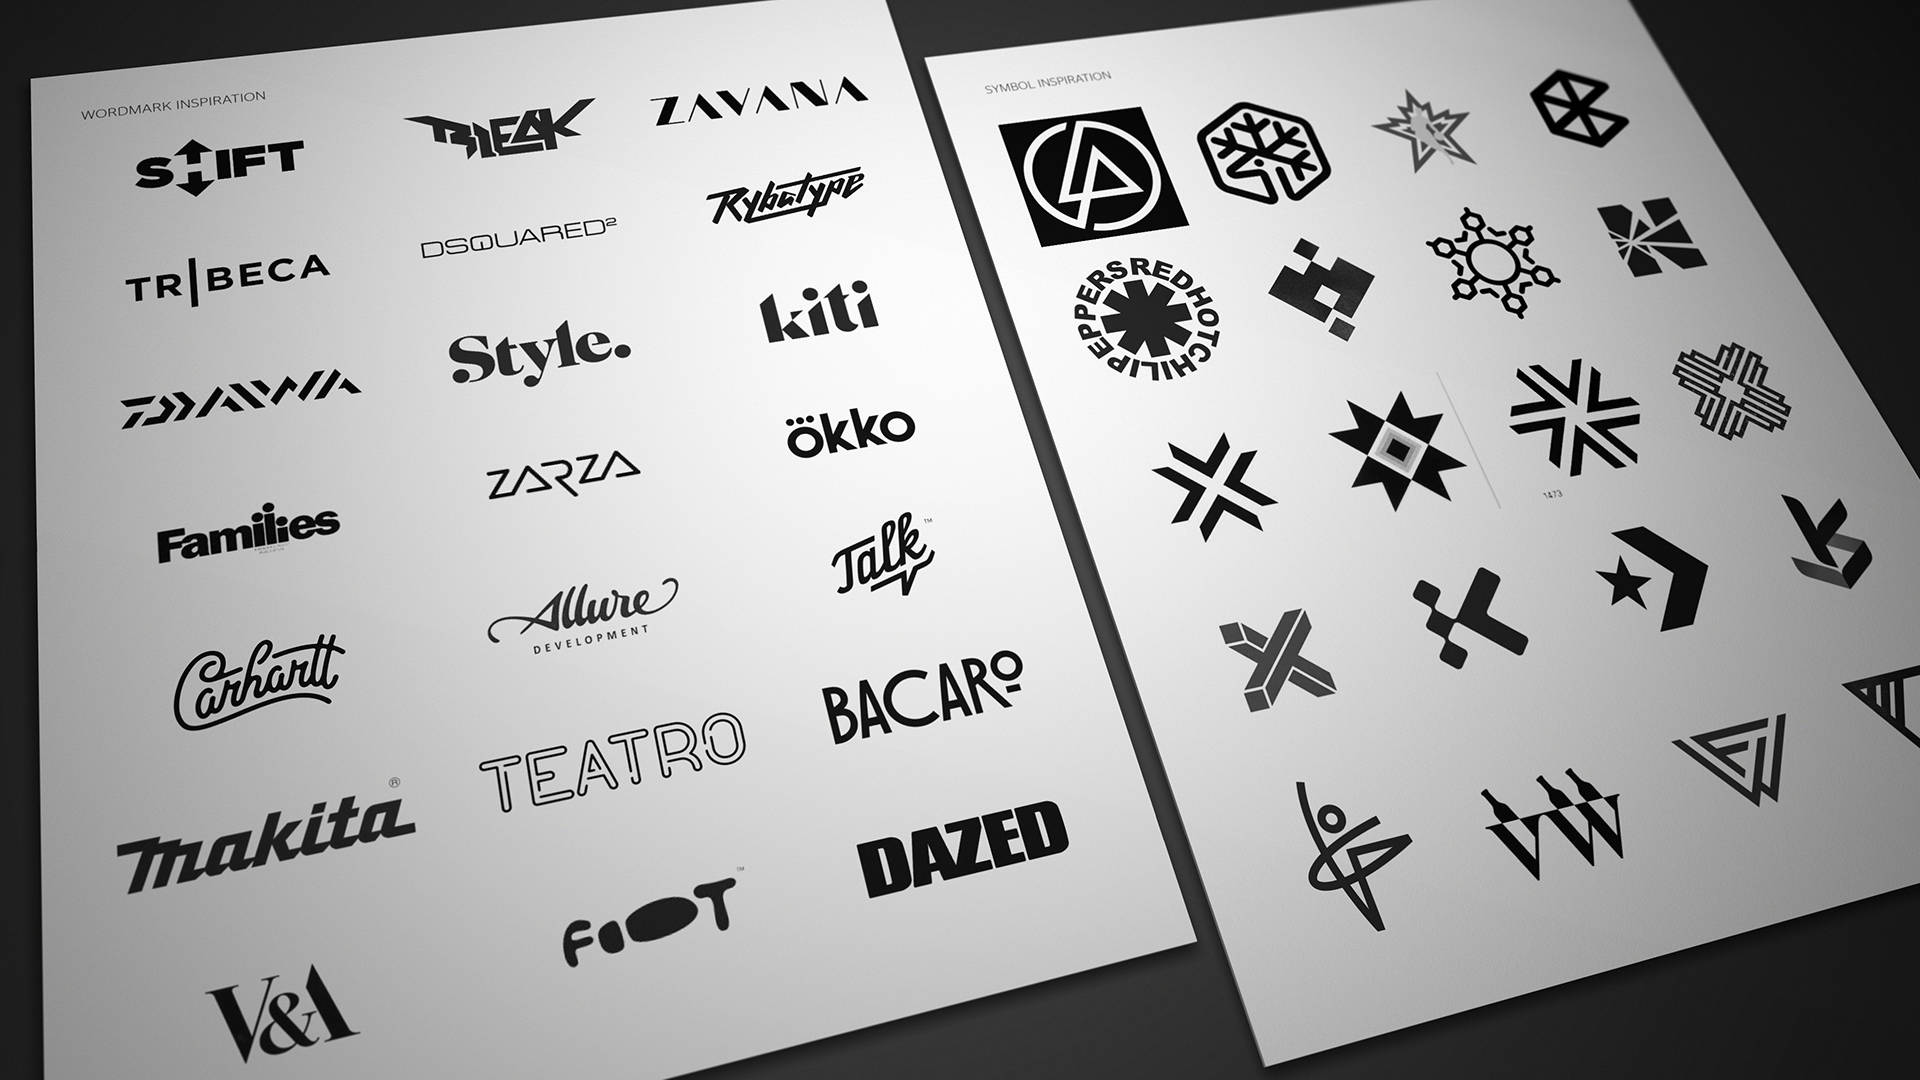 We researched simple flat brands for inspiration.